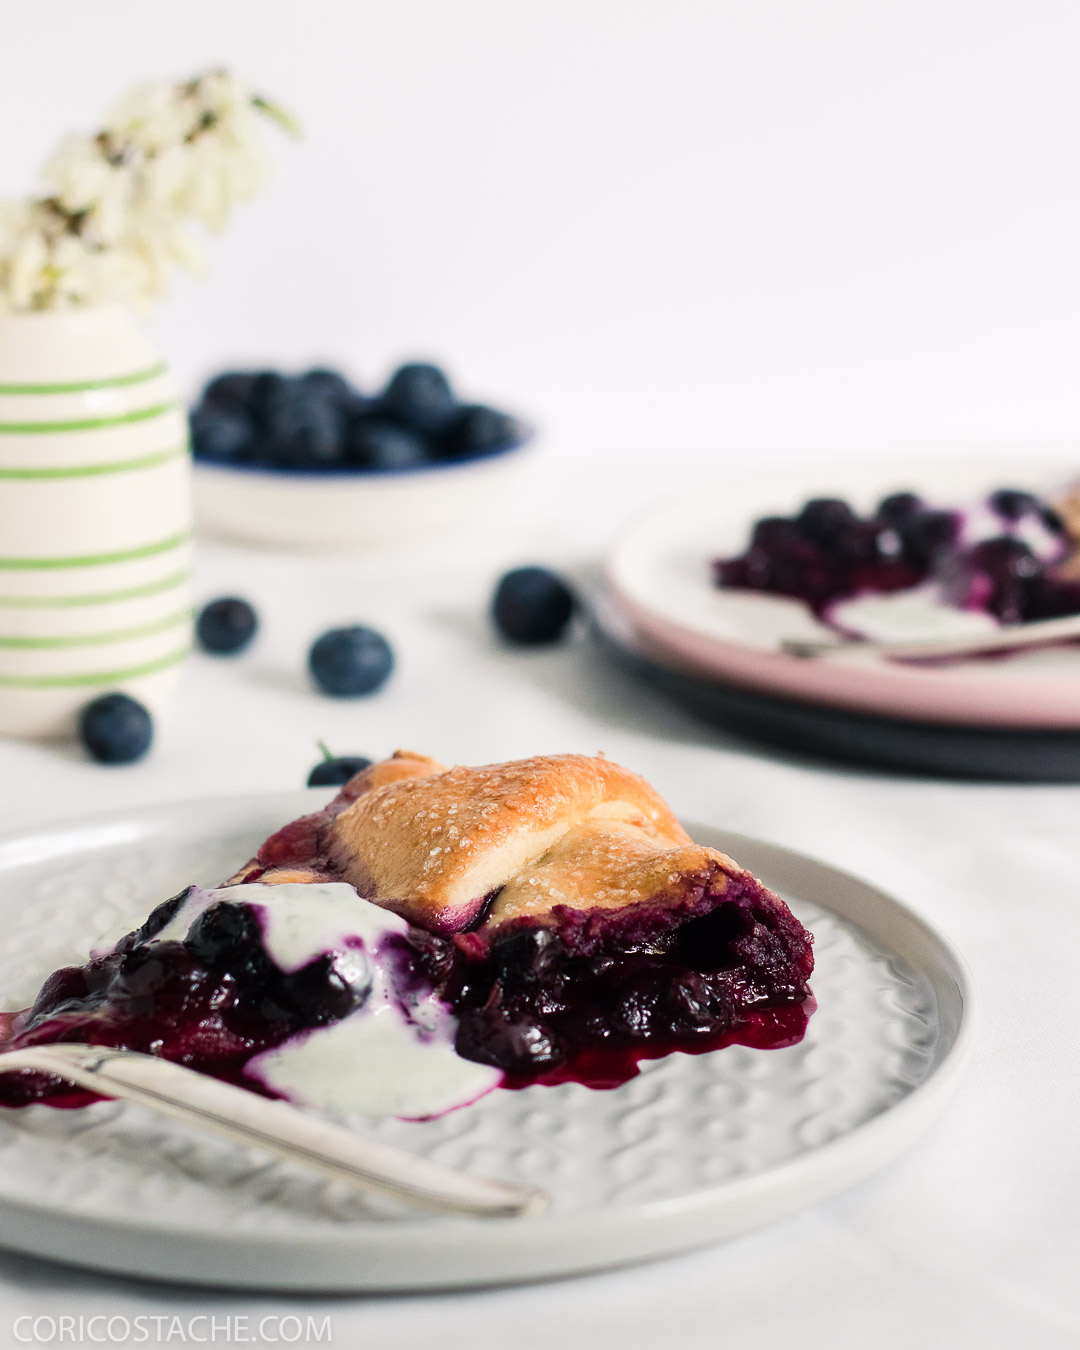 Rustic Blueberry Tart With Mint Greek Yogurt